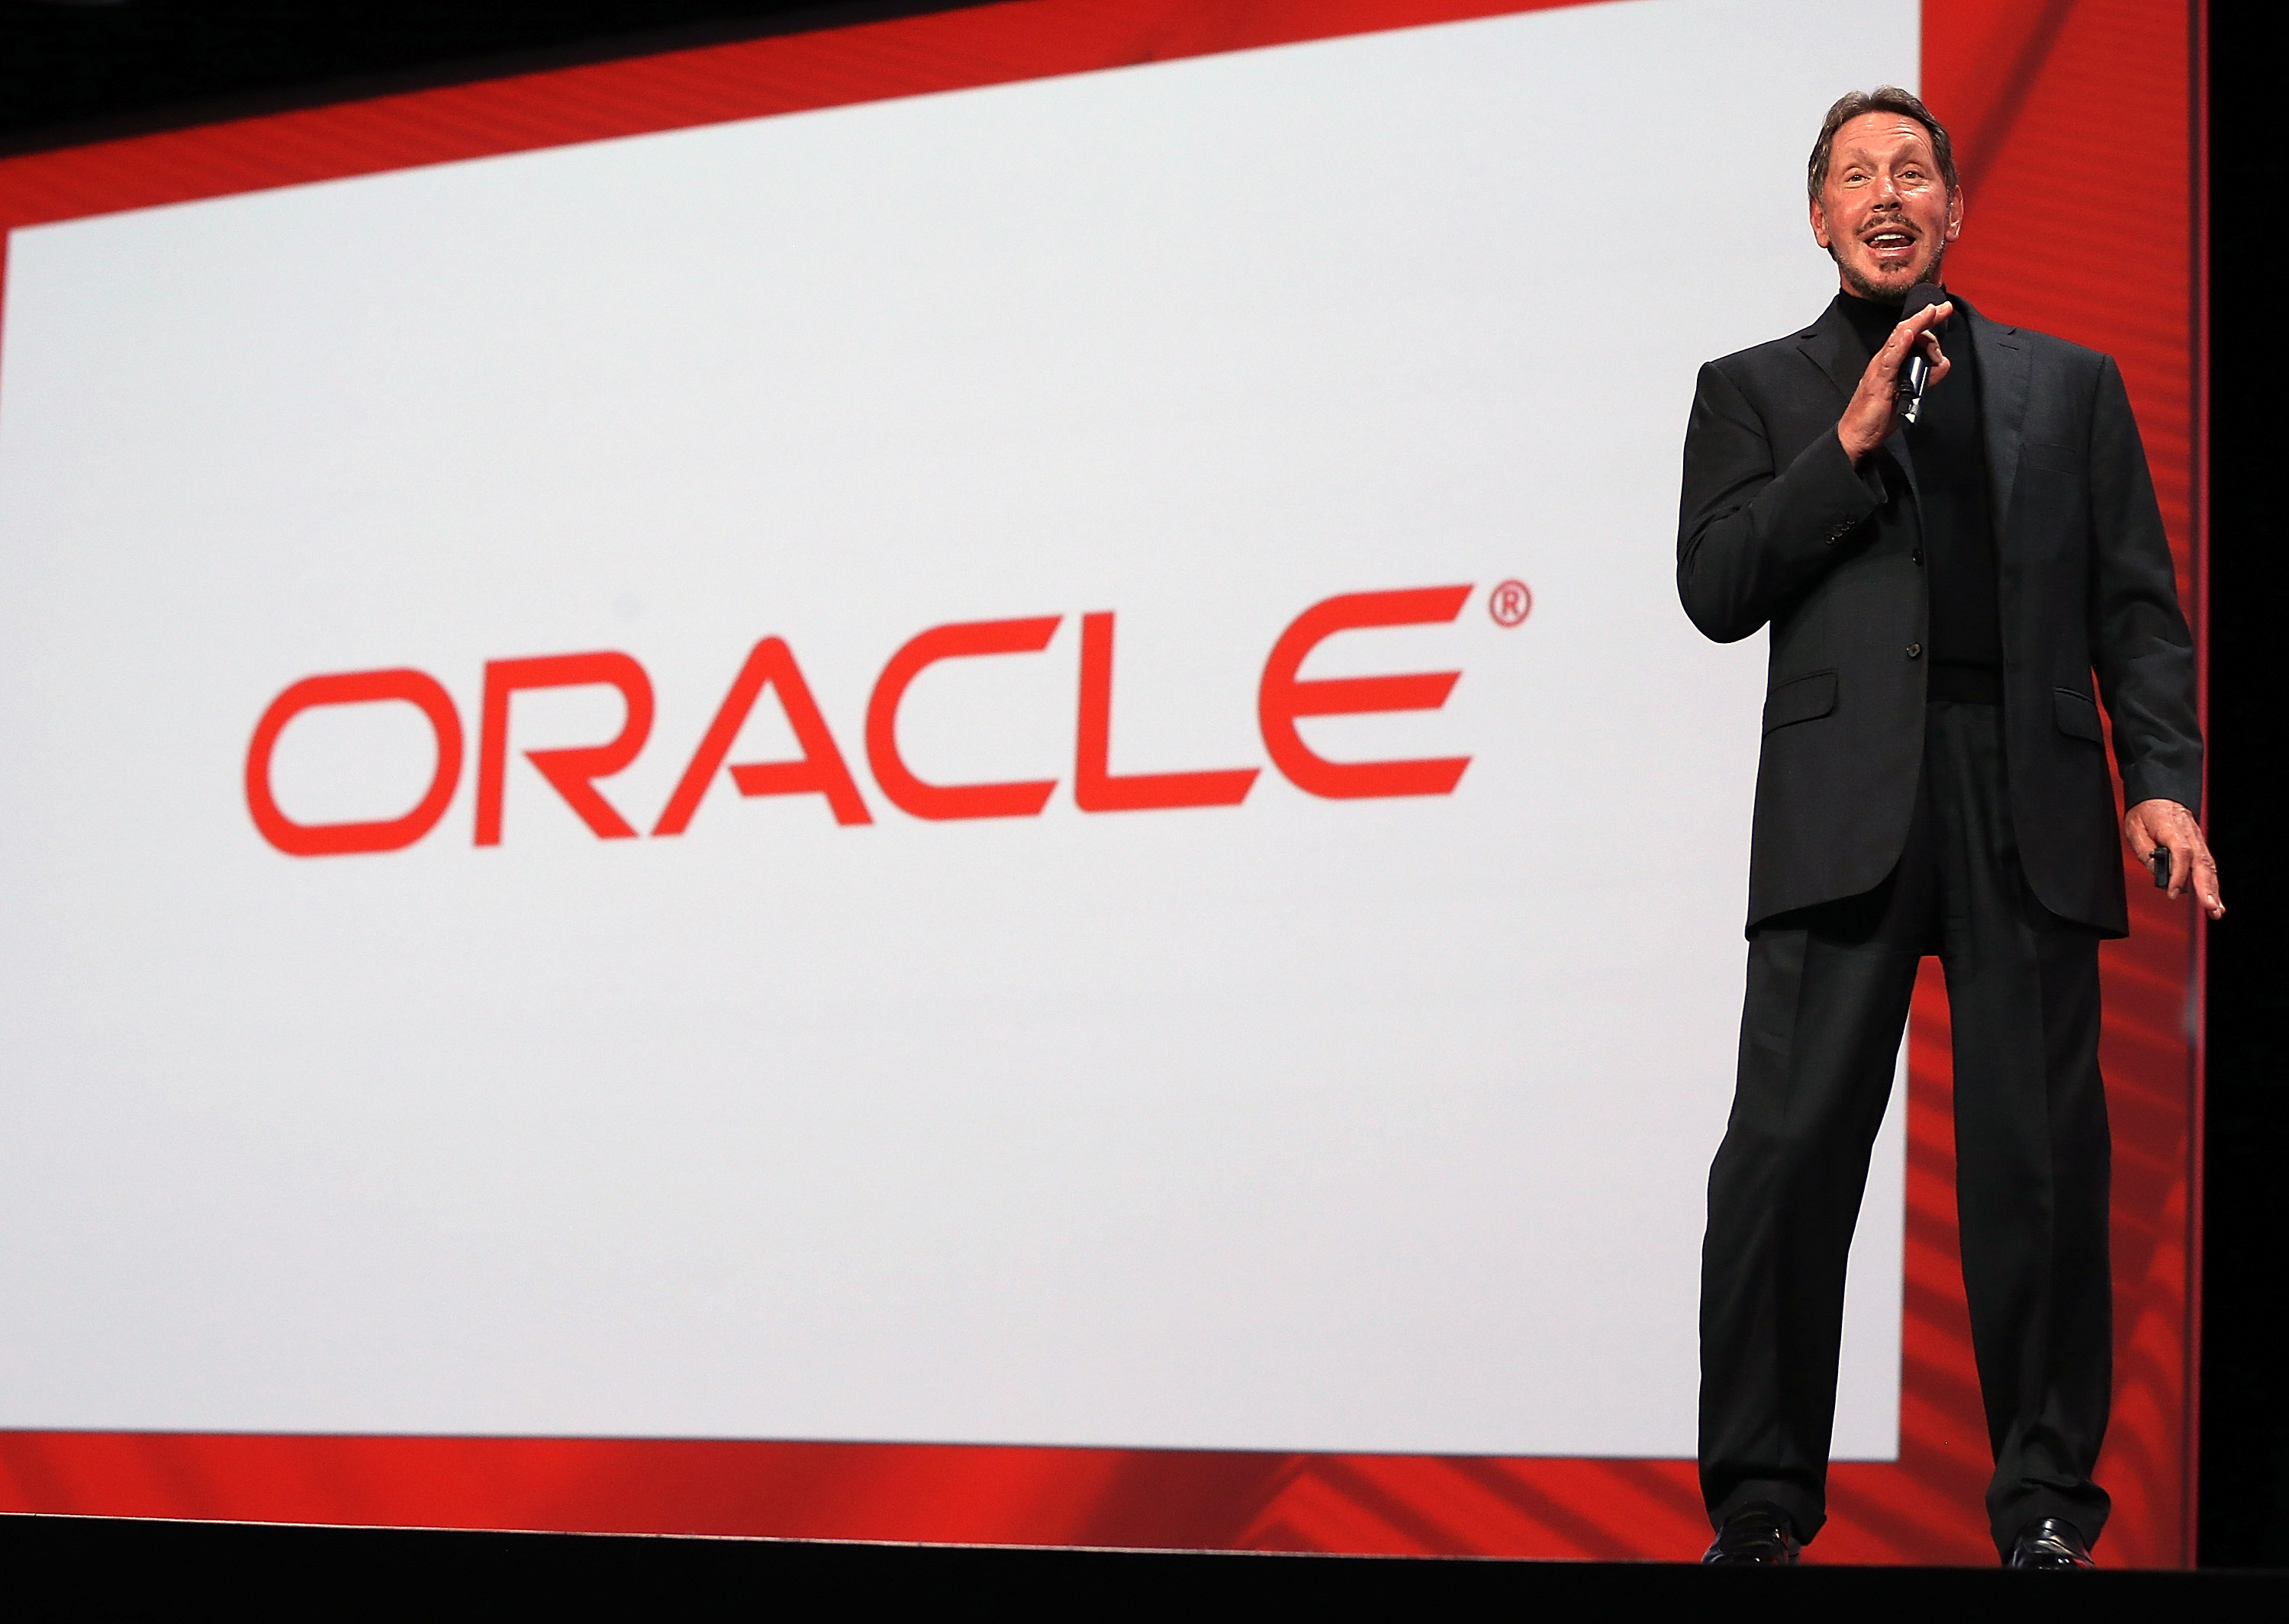 Oracle CEO Larry Ellison. (Photo by Justin Sullivan/Getty Images)